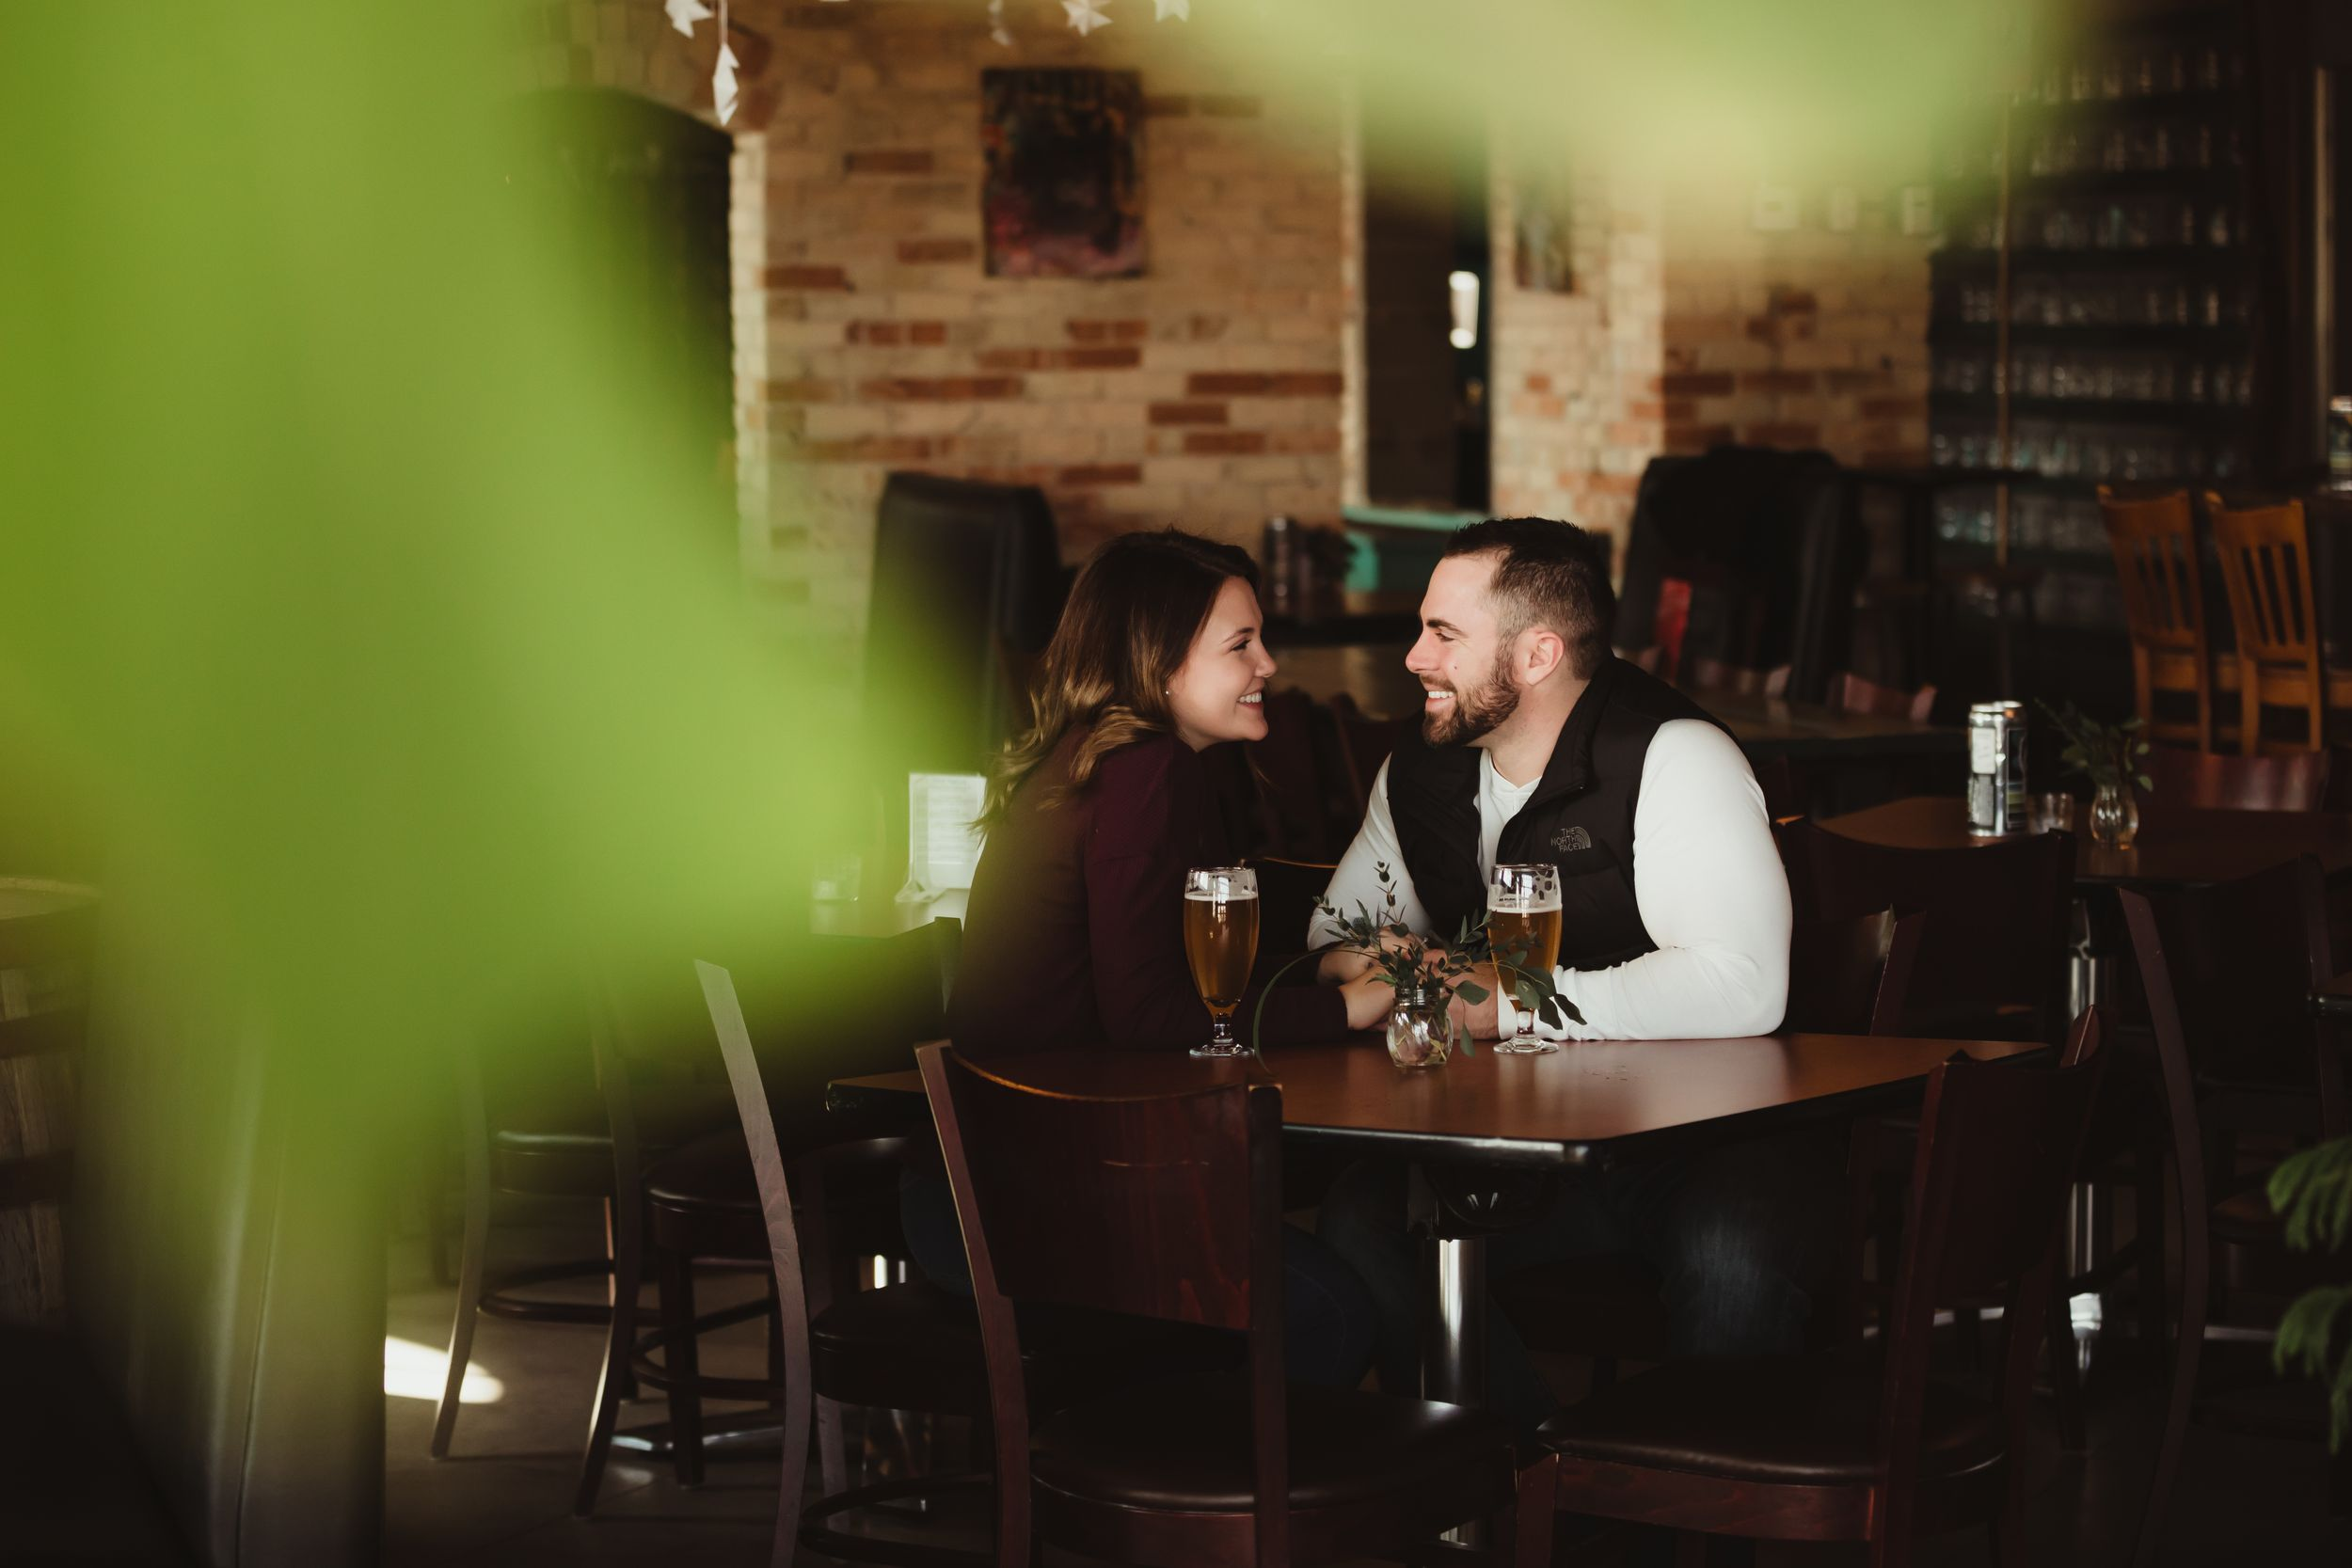 A man and woman sitting at a table in a brewery smiling at each other.